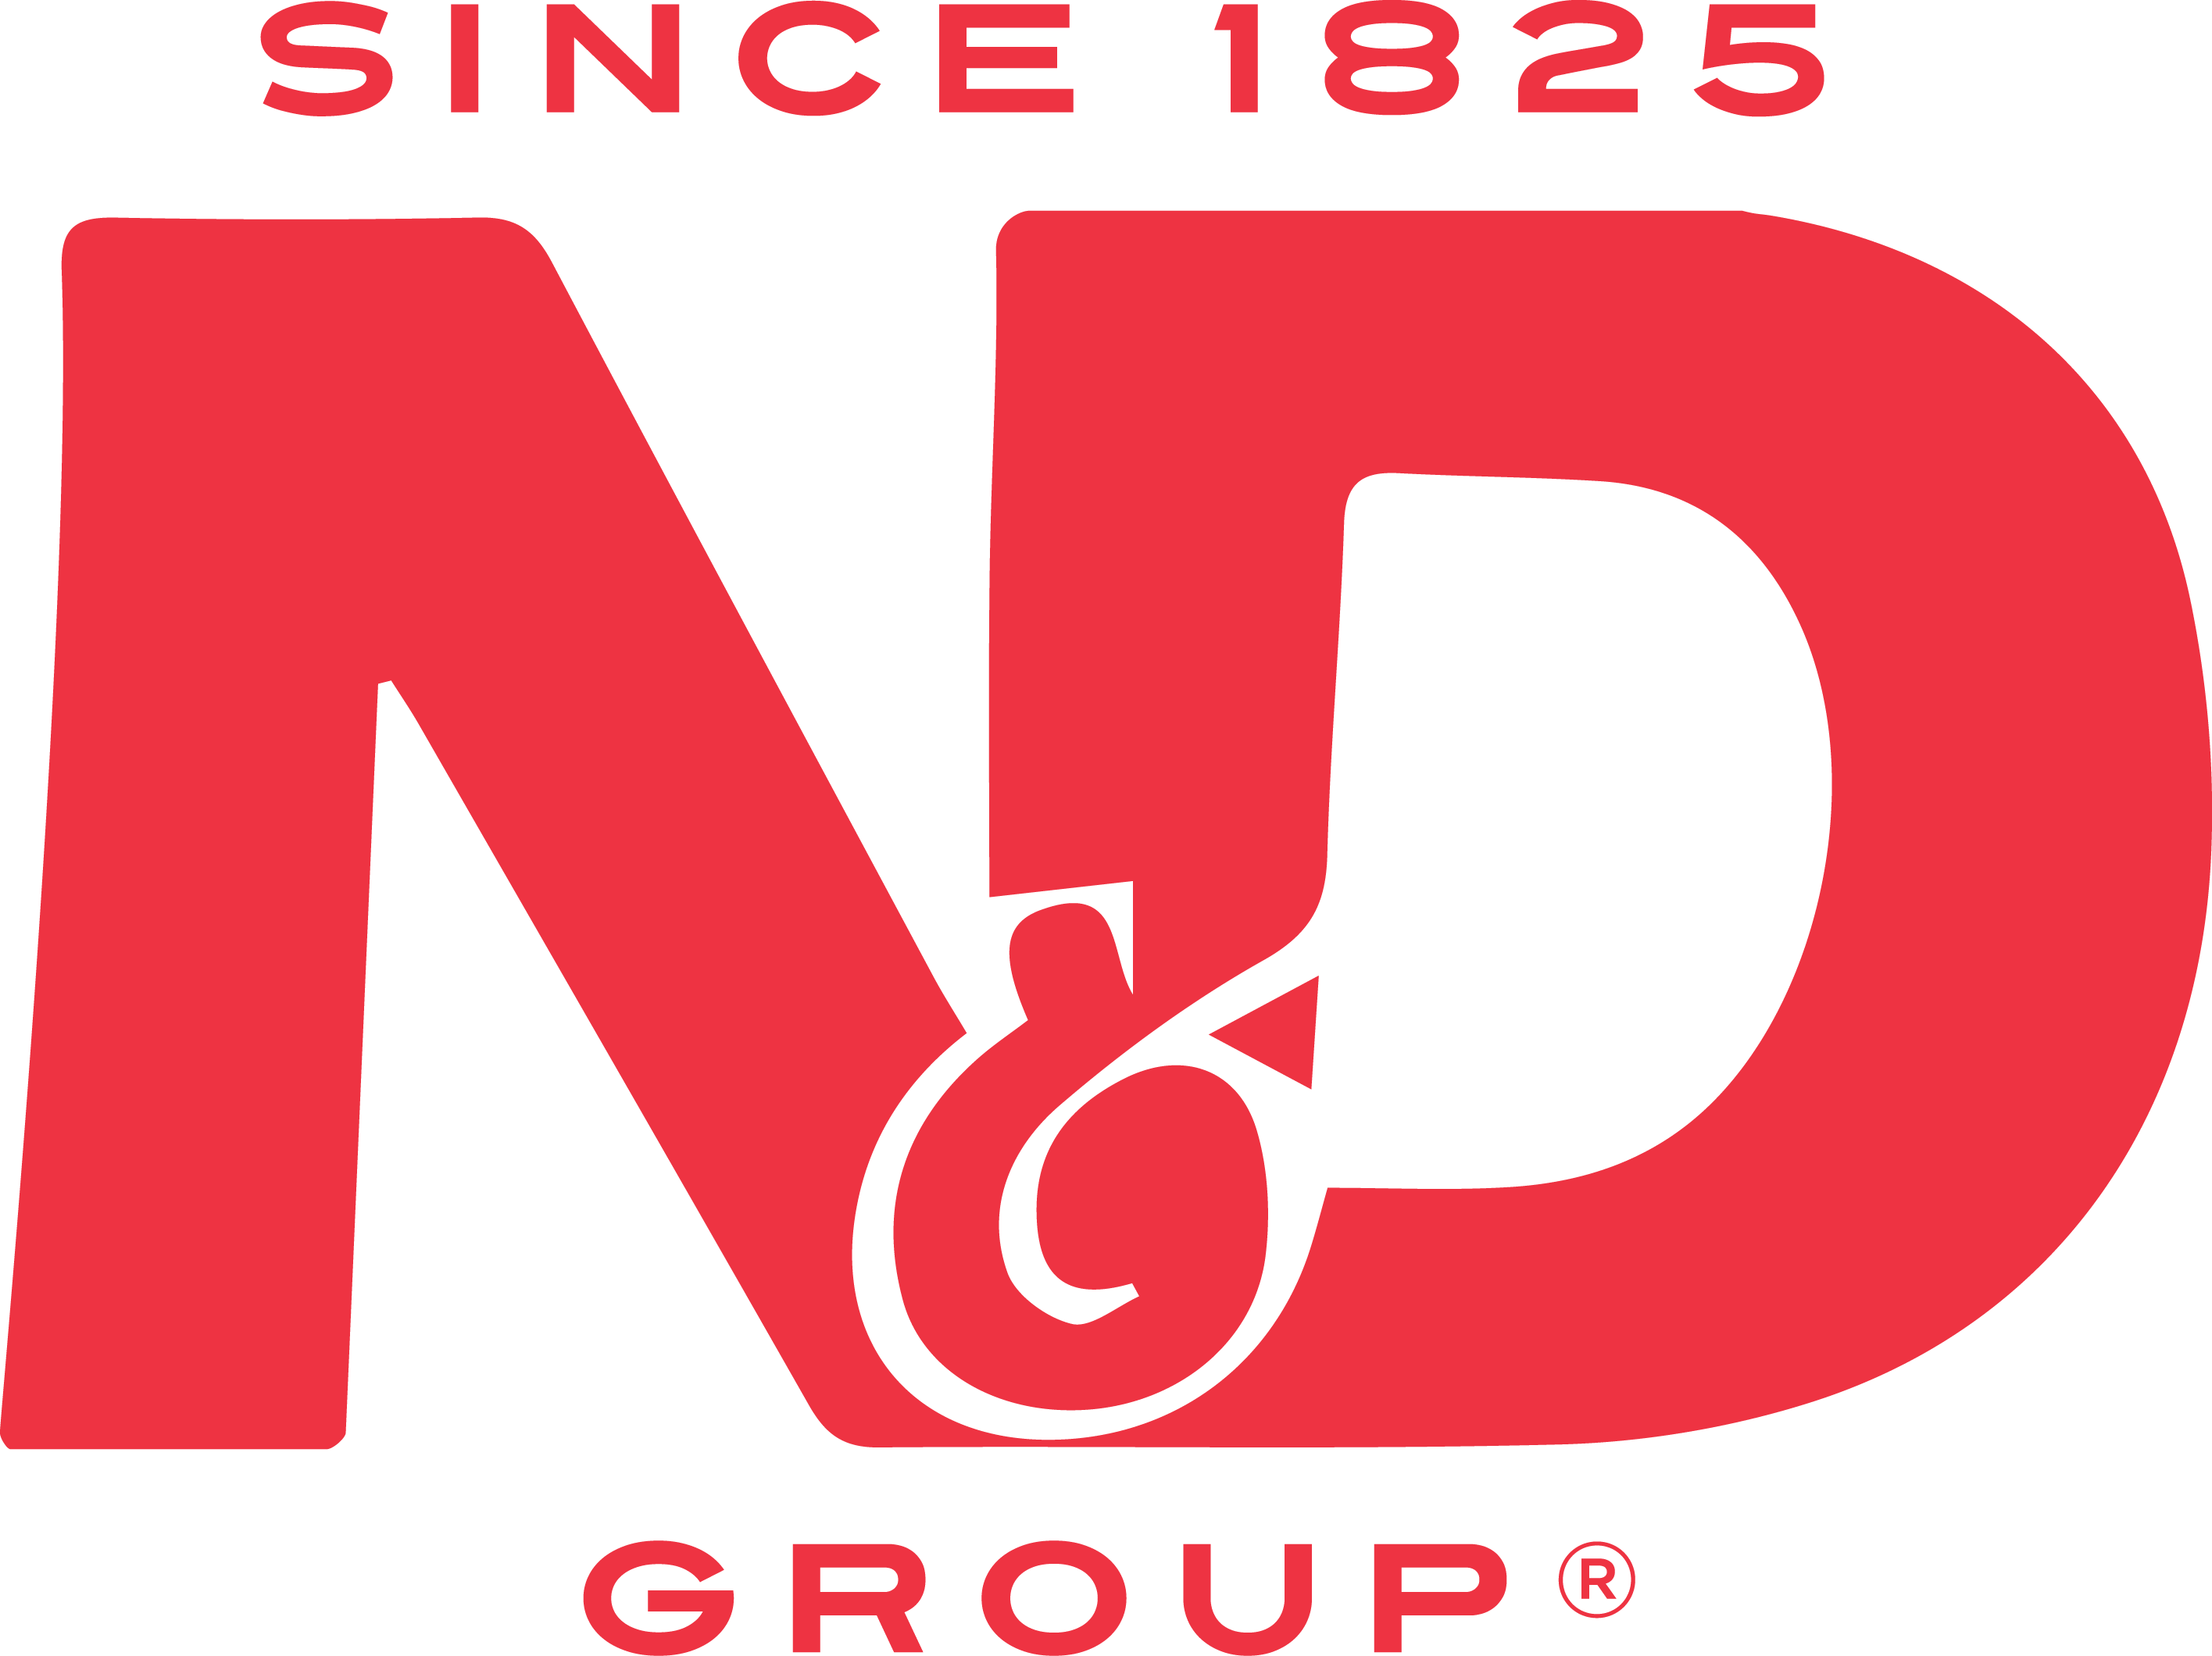 ND Group 2015 Pantone Red 032 C